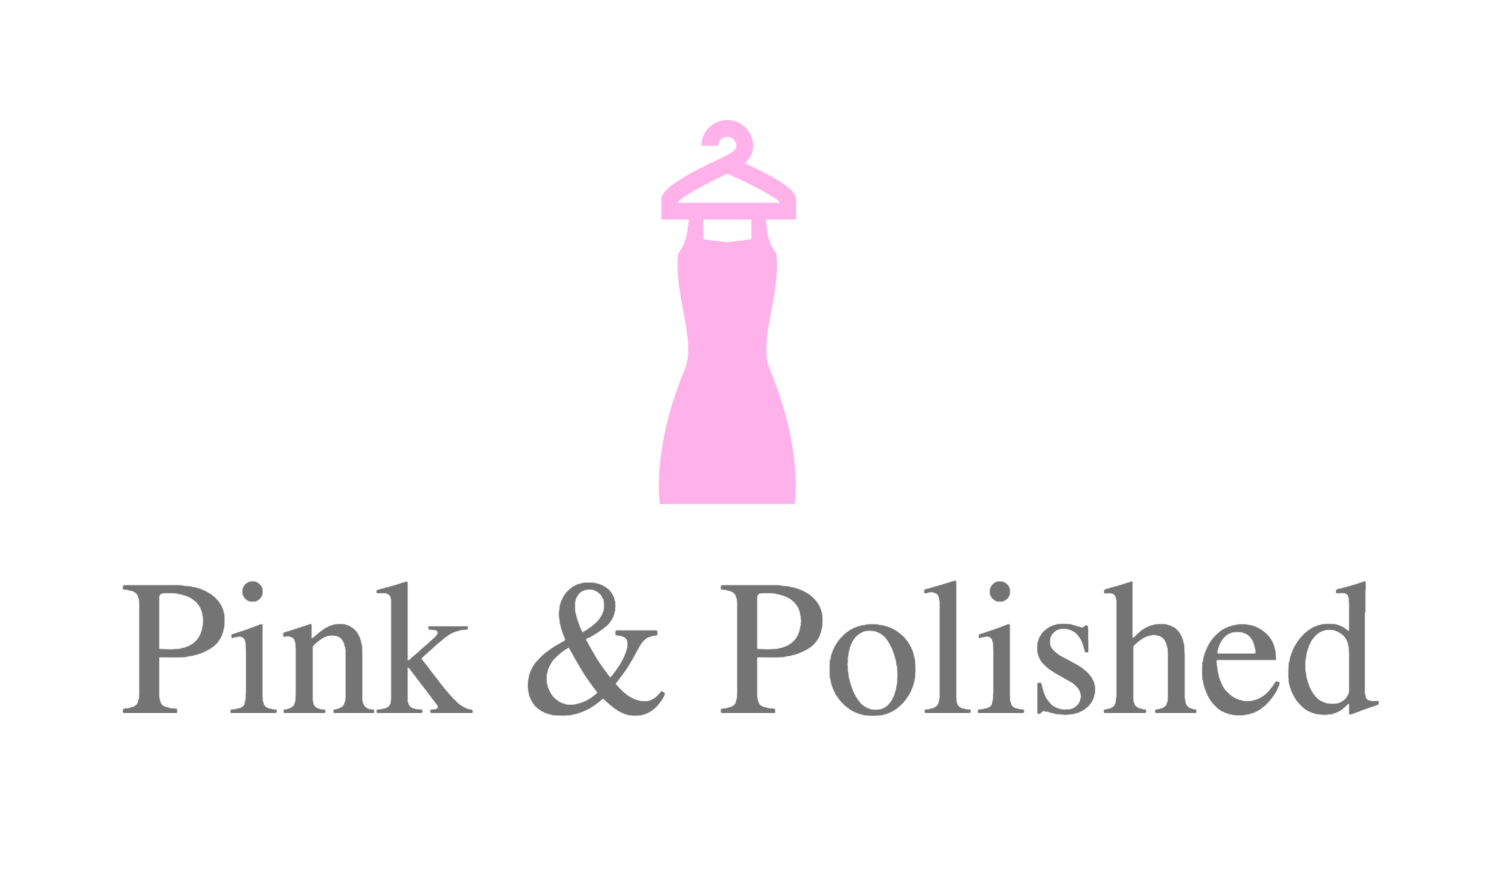 Pink & Polished Image Consulting